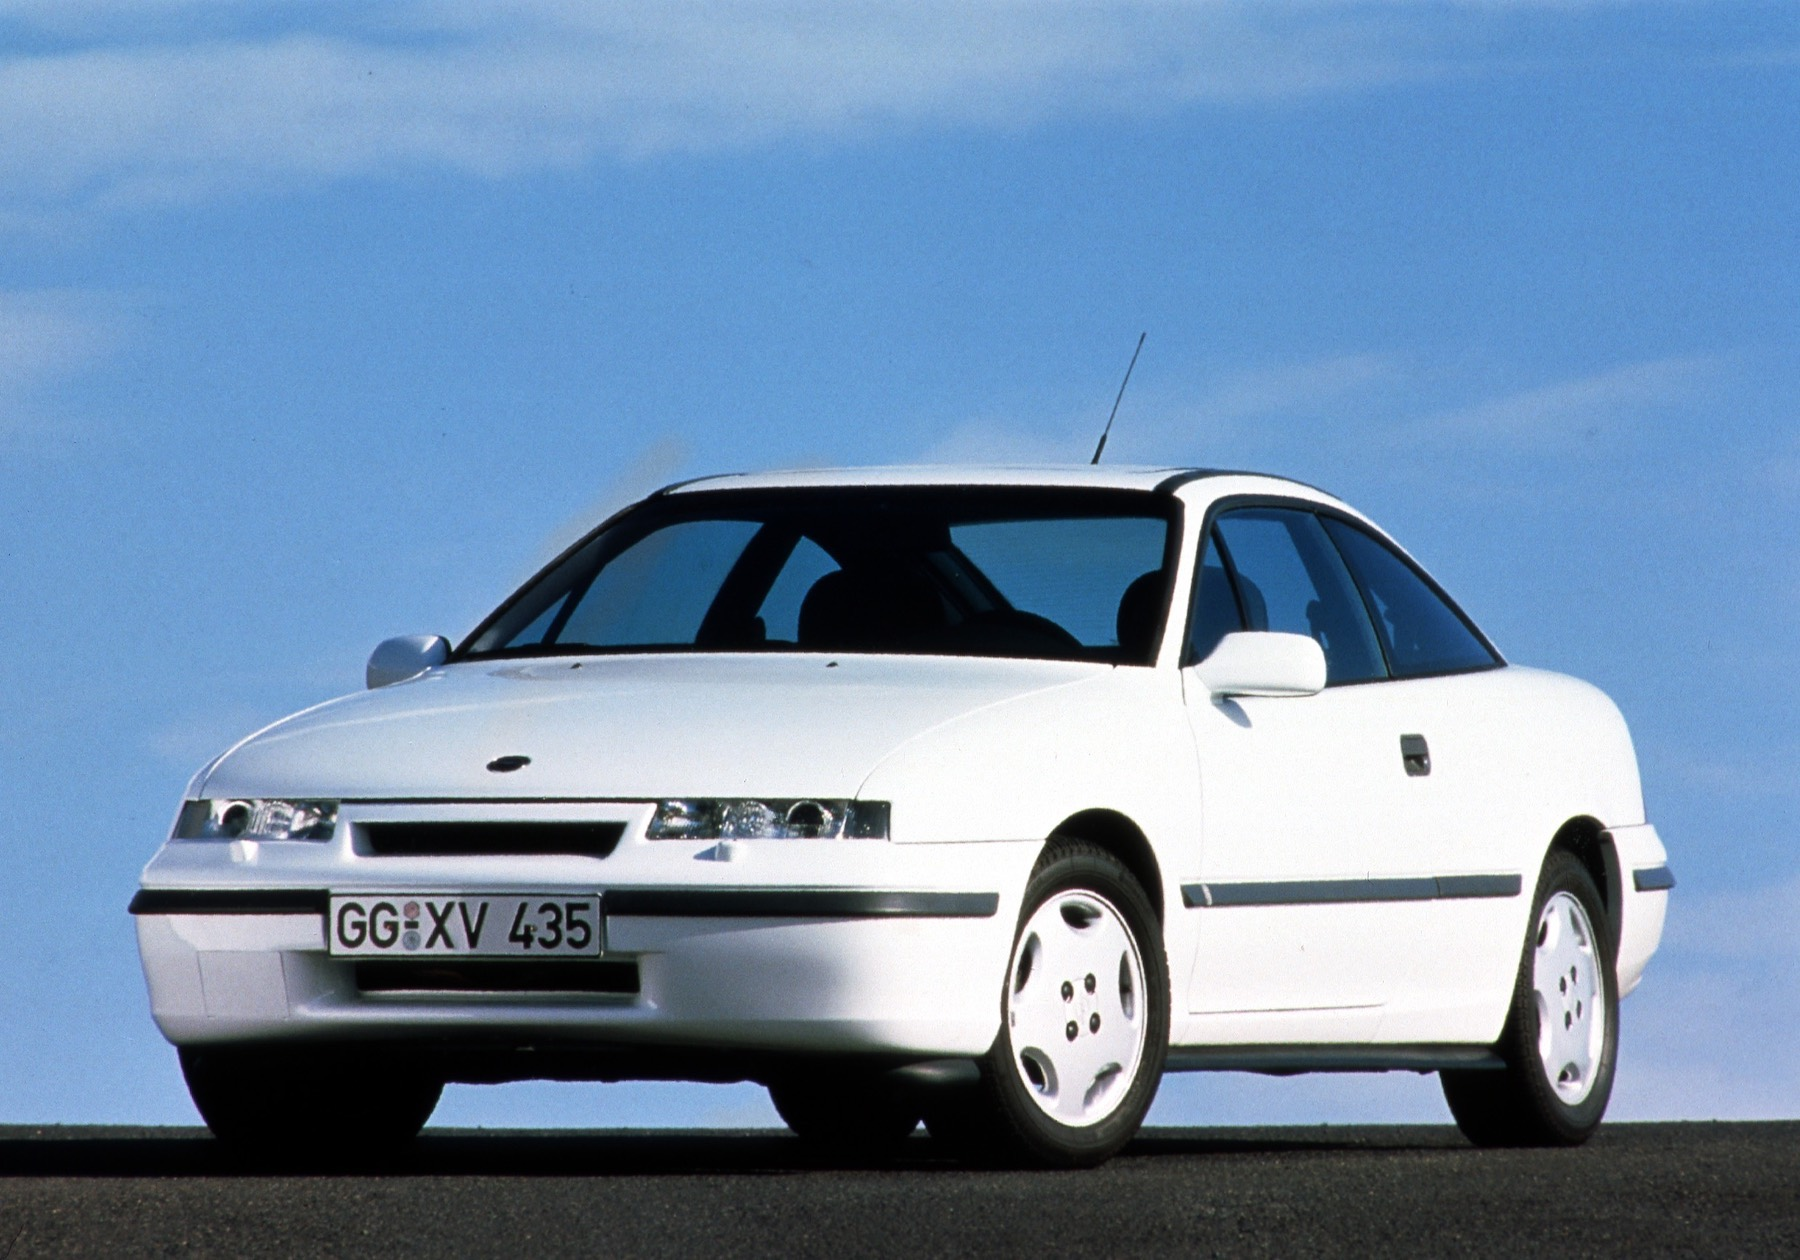 2.0-liter entry-level engine: Opel Calibra 2.0 with 115 hp